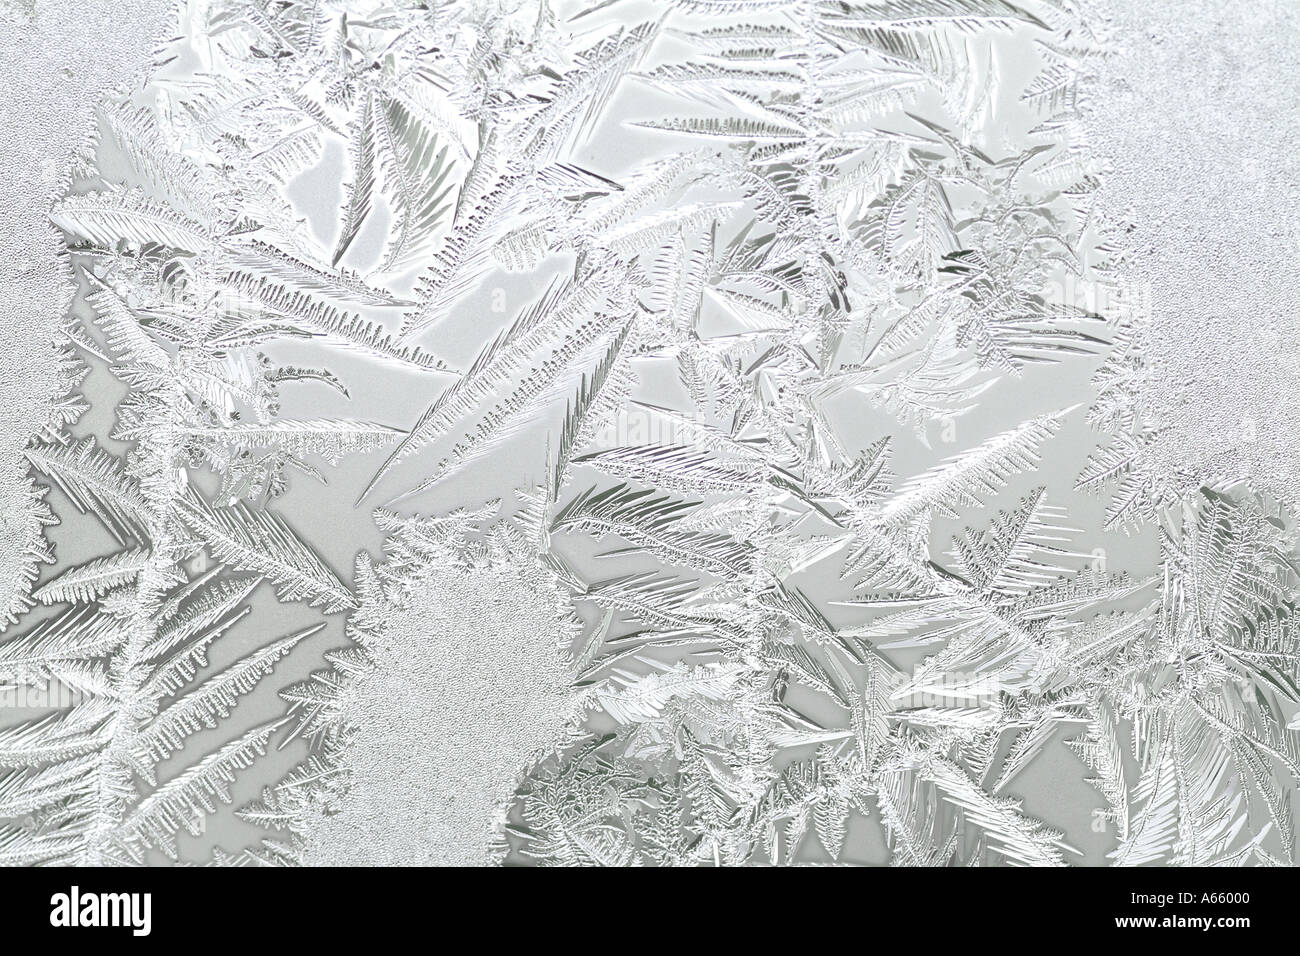 Frost On A Wintry Window - Stock Image